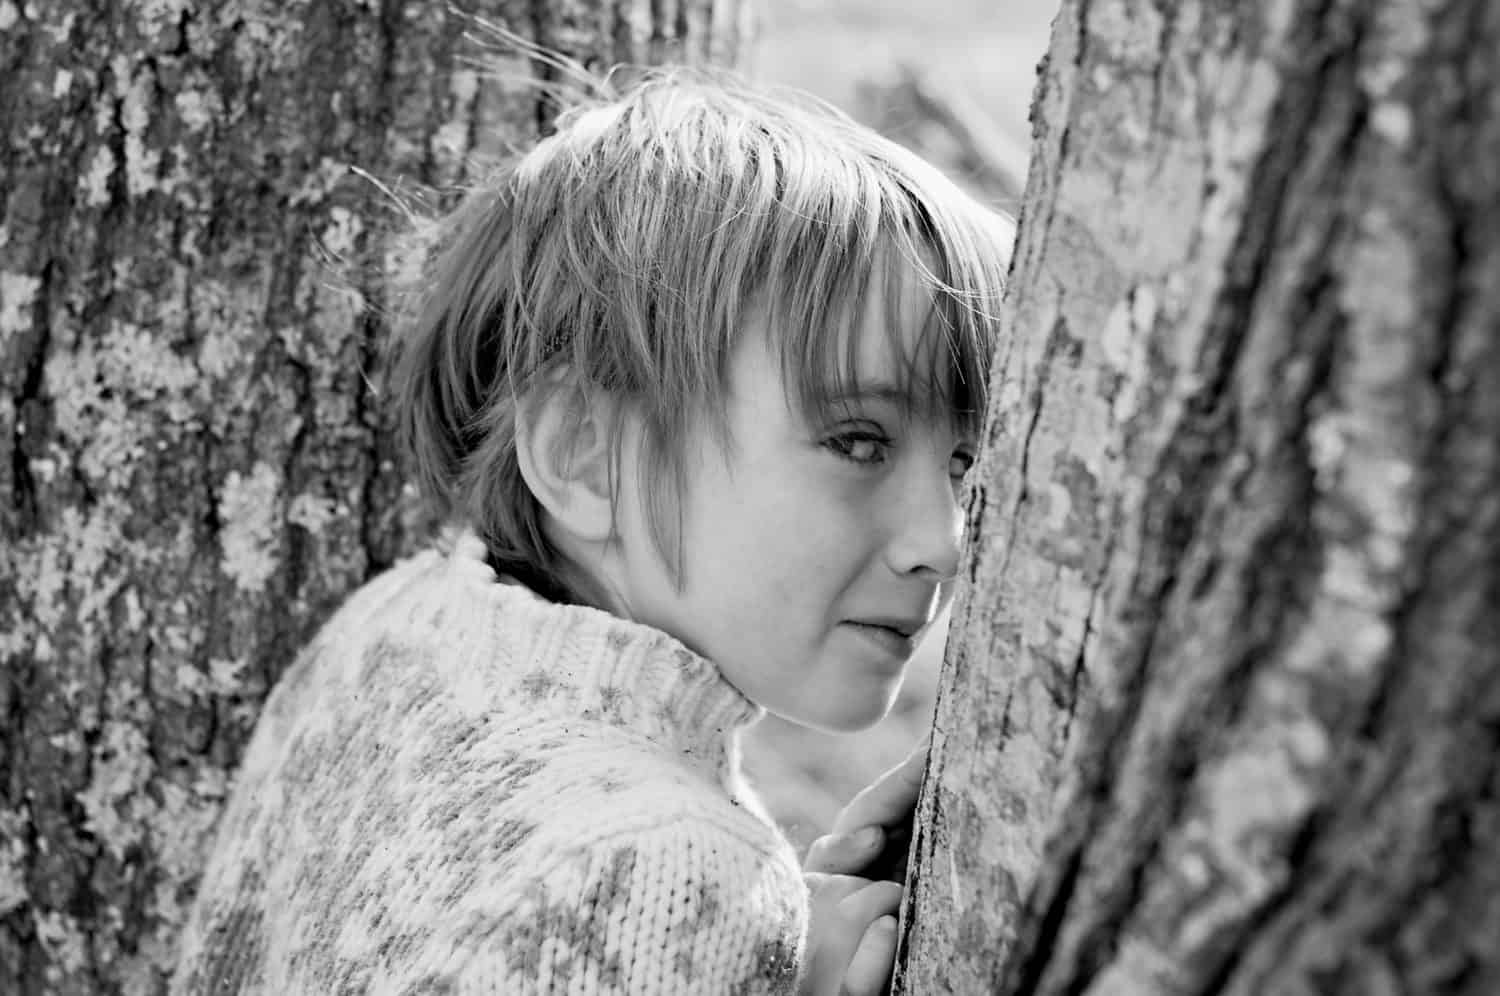 Black and white photo of young boy glancing from behind a tree